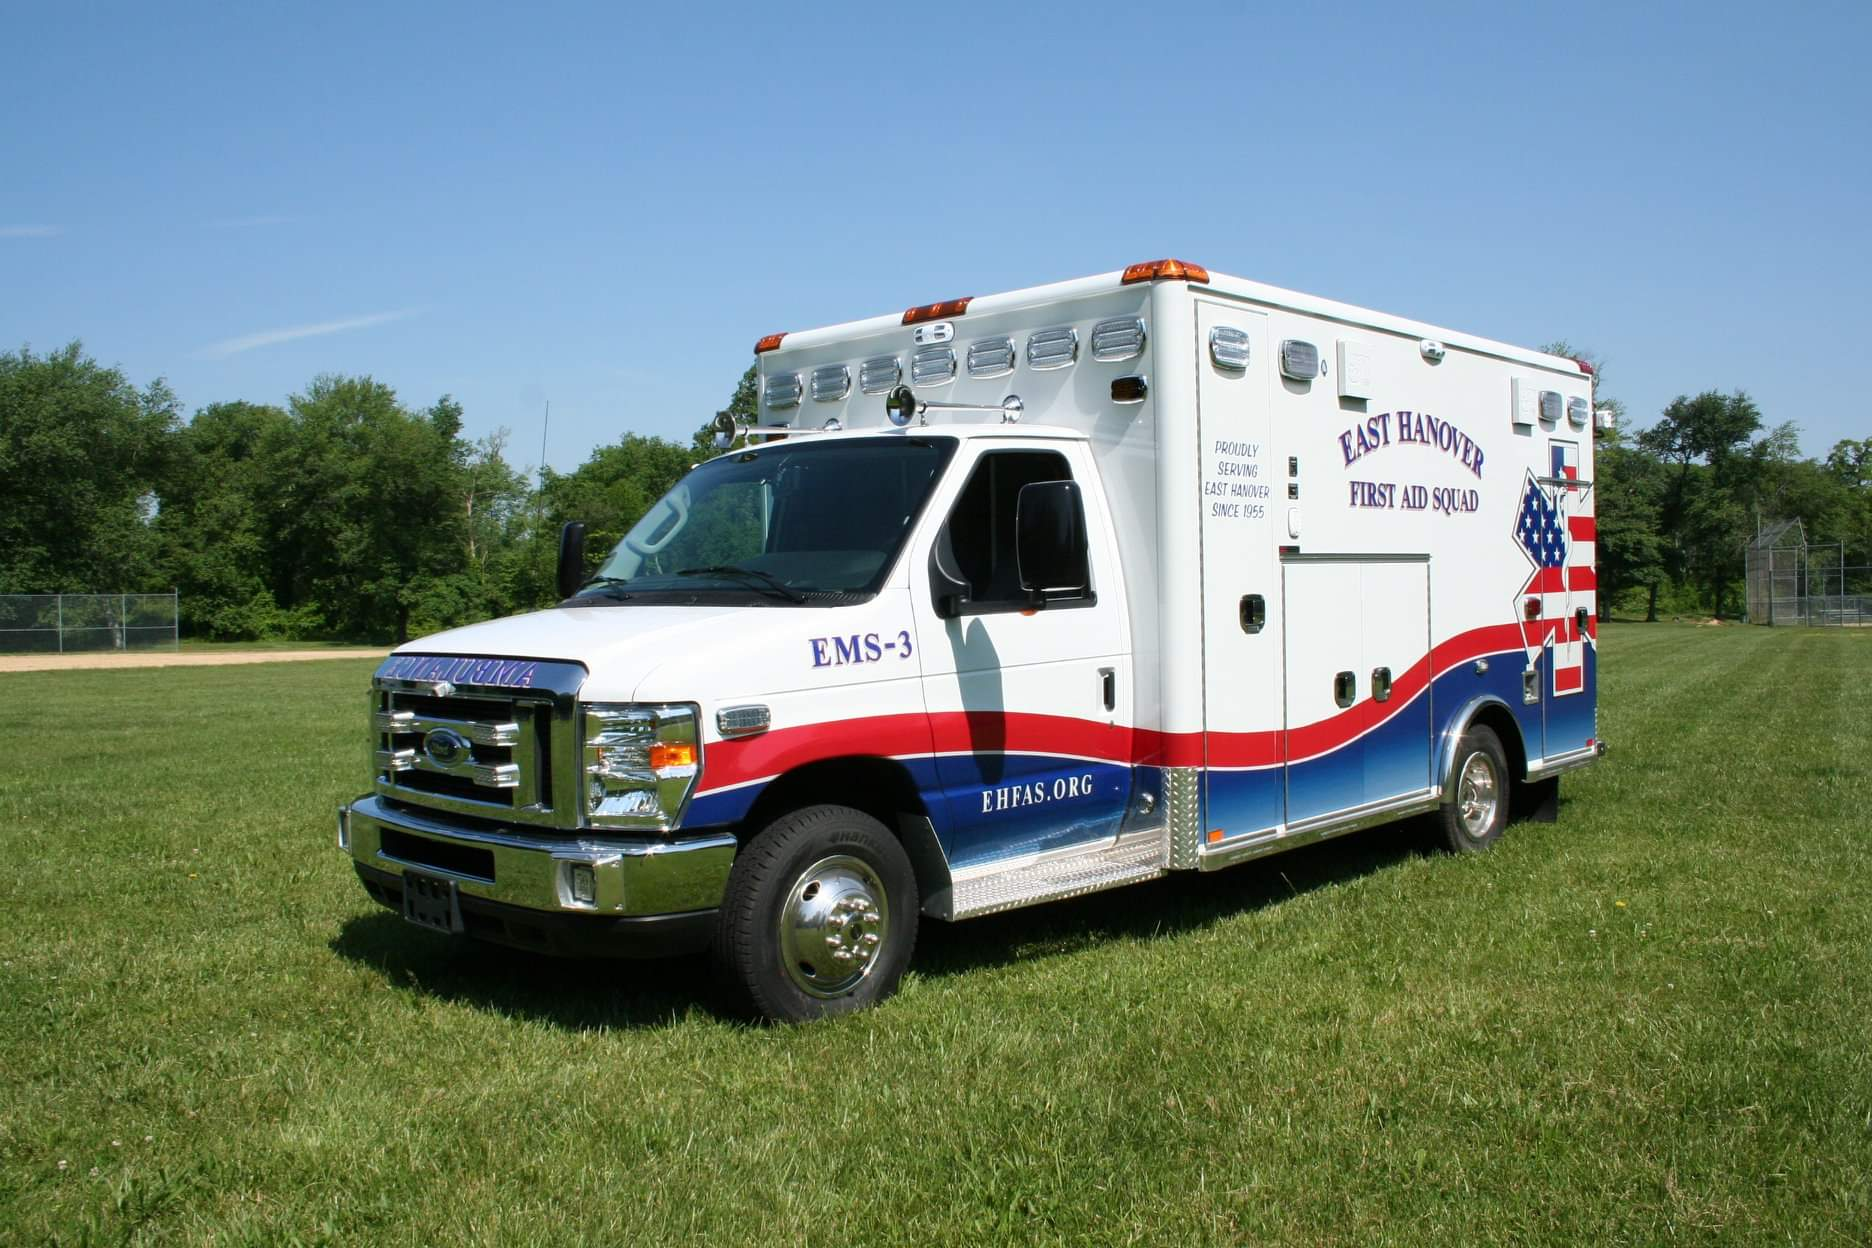 Where your Donations Go - Through the generous donations of members of our community, we are able to purchase necessary equipment that allows us to best serve our town. We recently invested in a new ambulance, as seen to the left, with new technologies that enhance our patient care.